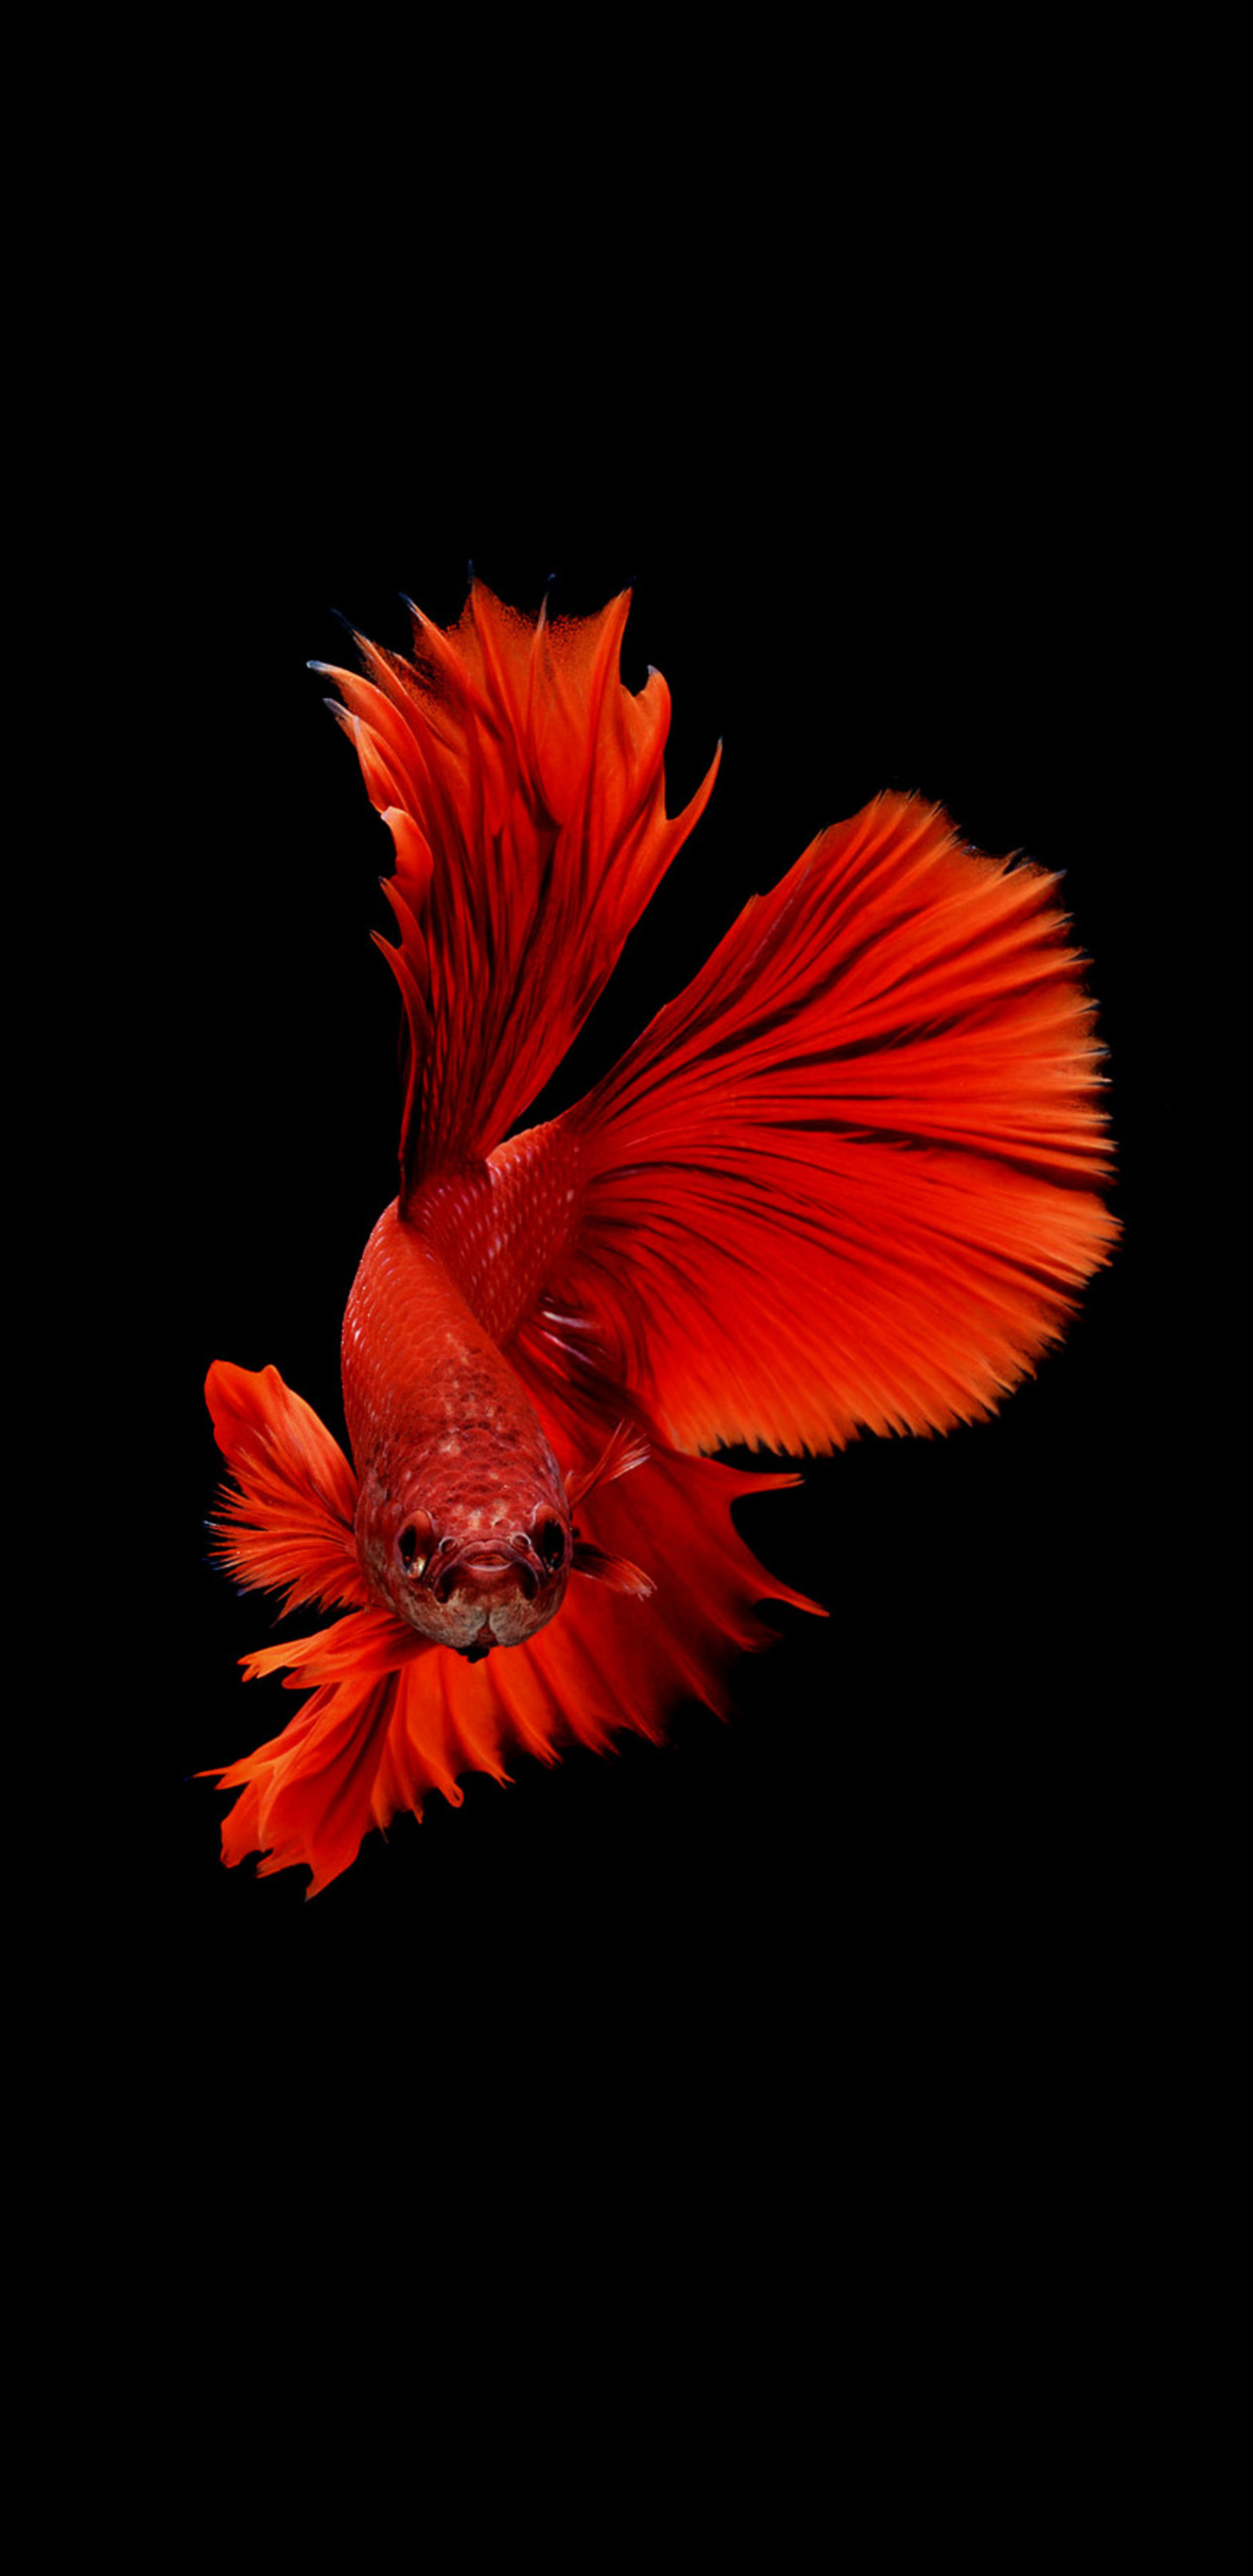 1440x2960 Betta Fish Samsung Galaxy Note 9 8 S9 S8 S8 Qhd Hd 4k